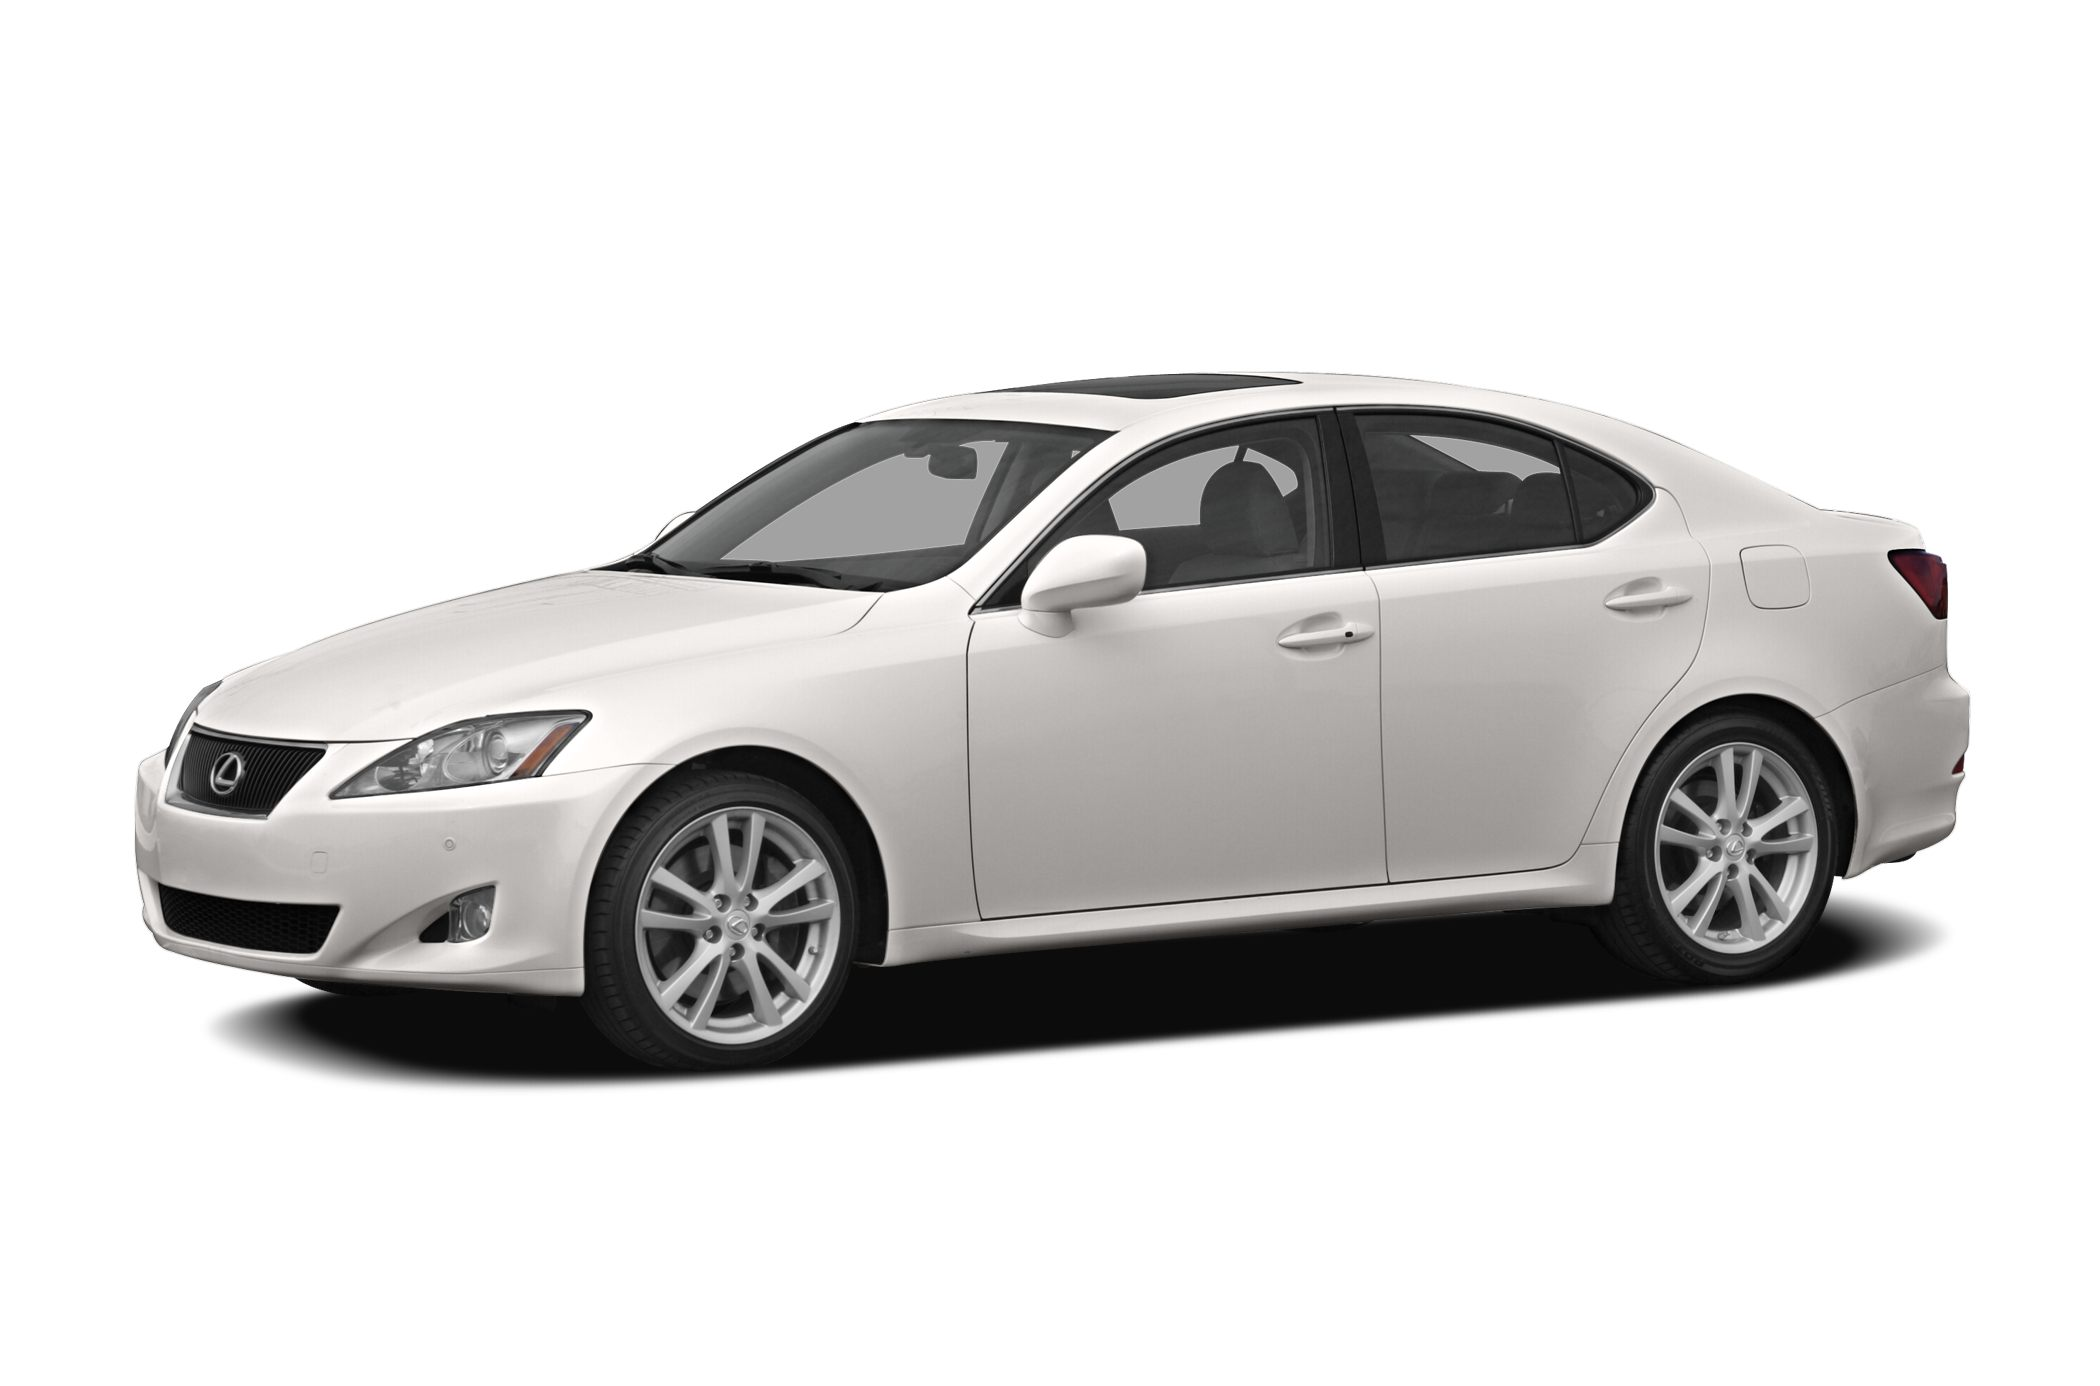 2006 Lexus IS 350 Base This particular IS350 is the most desirable sports car in its class This L